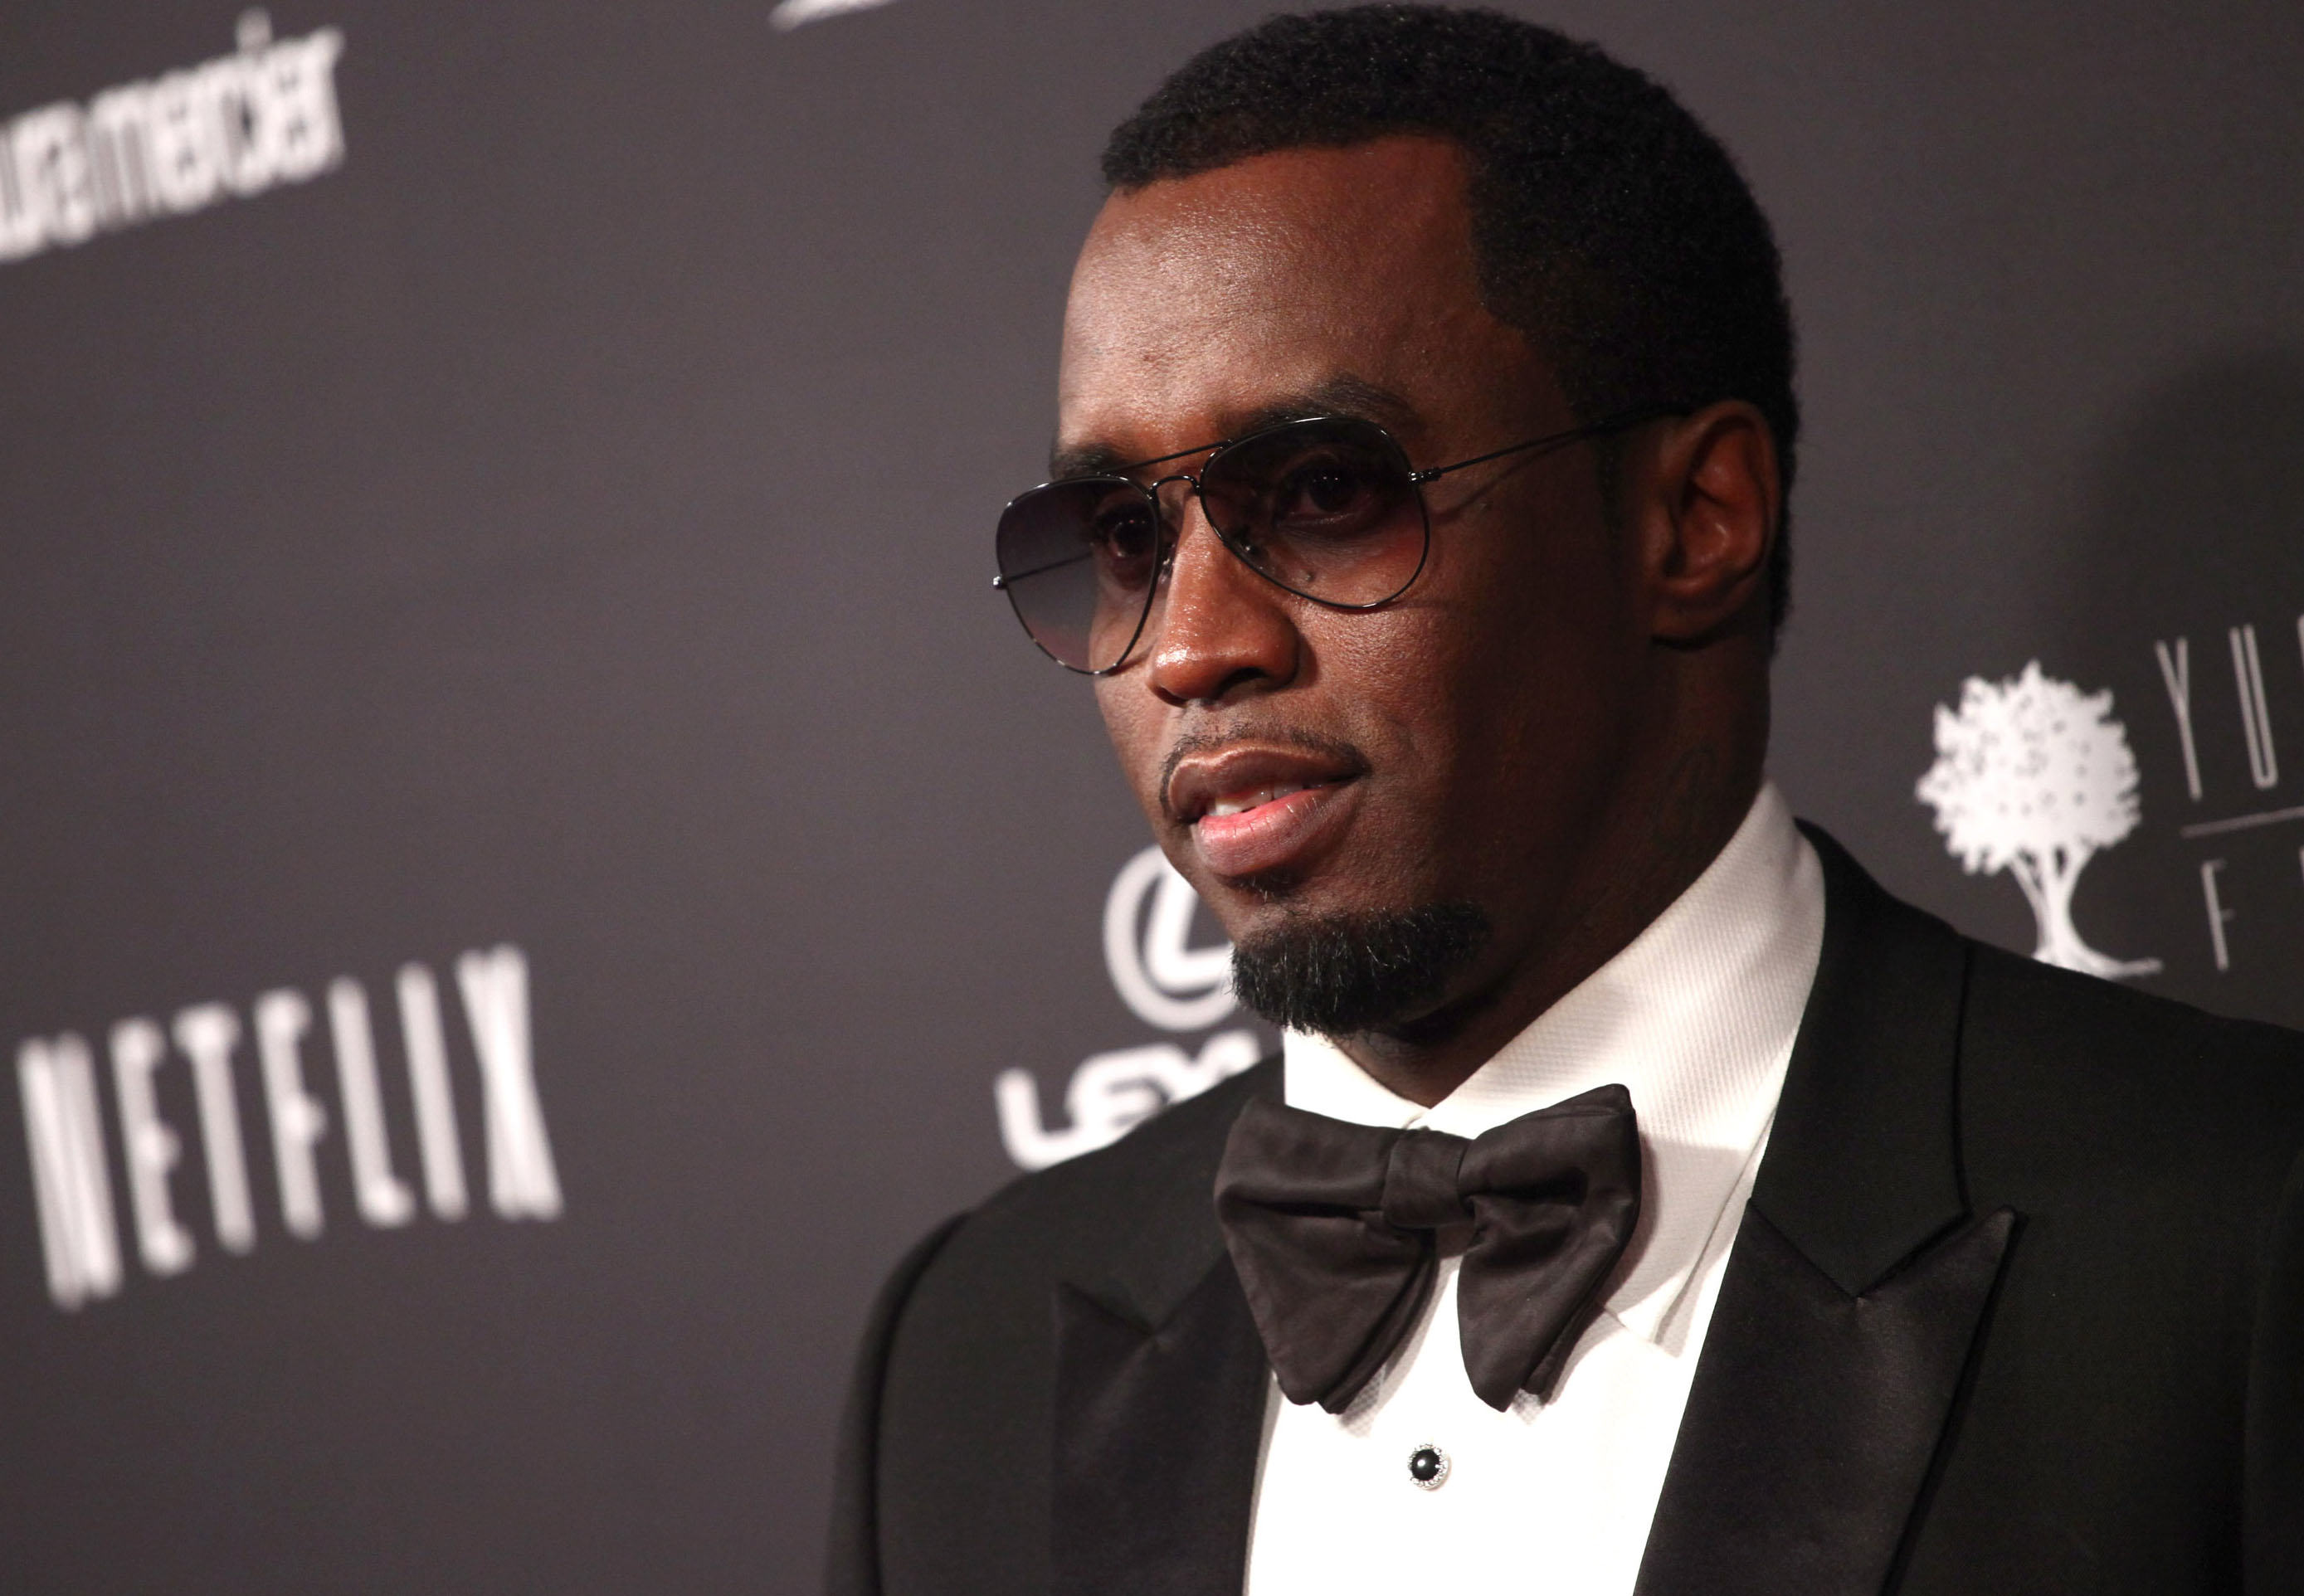 P Diddy Arrested For Assault With Deadly Weapon sean combs